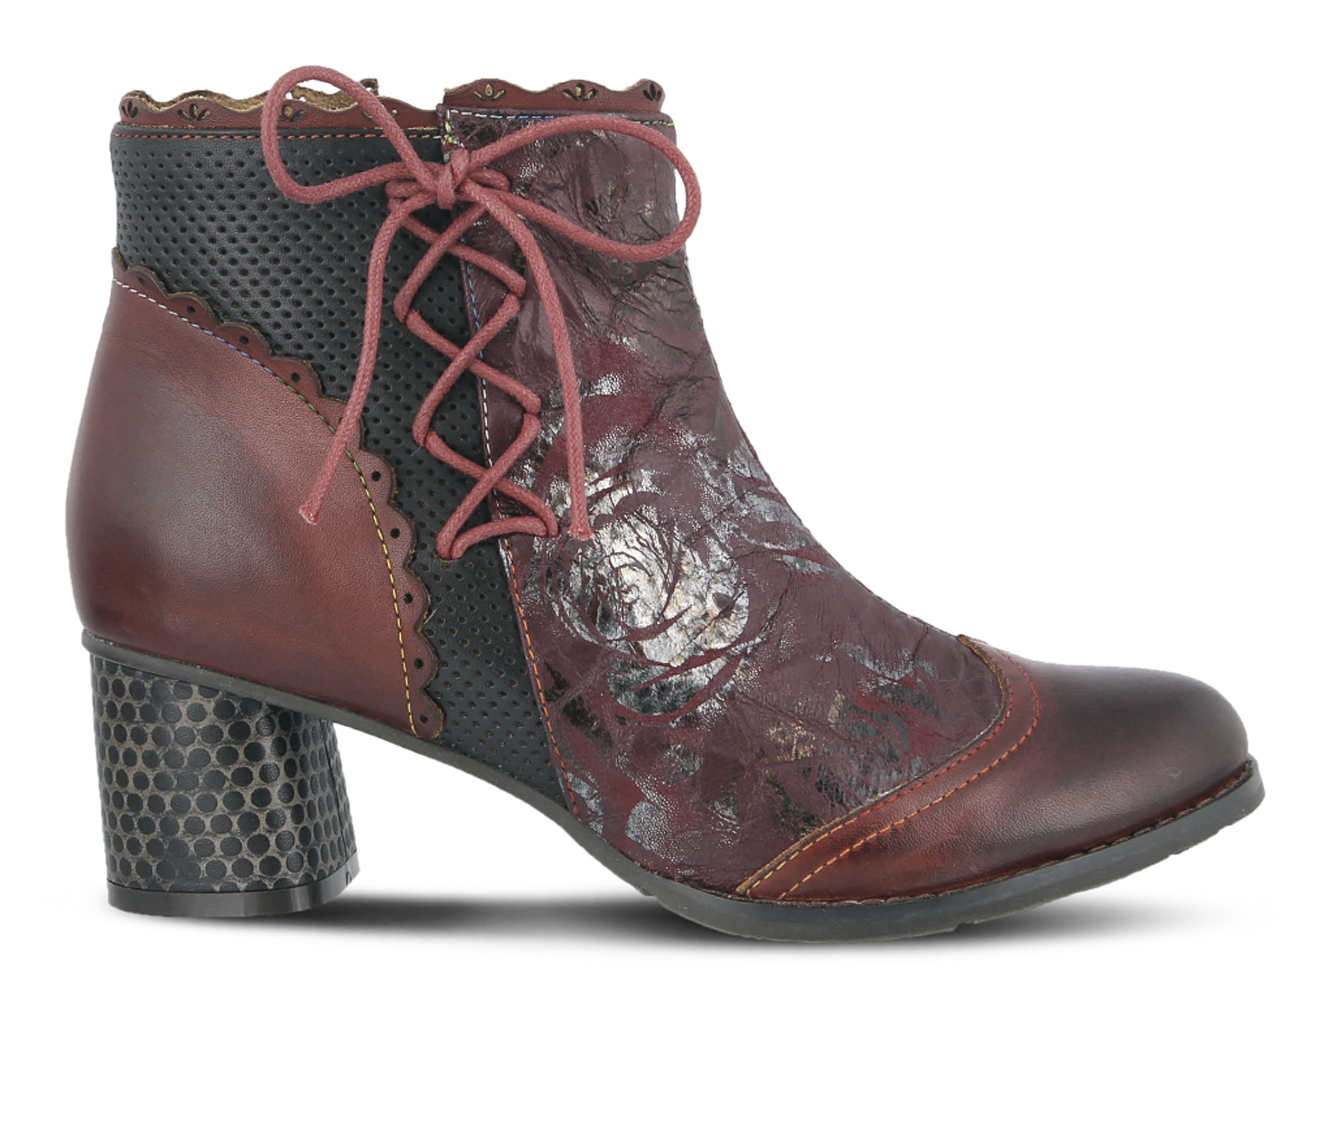 L'Artiste Lizeit Women's Boots (Red Leather)